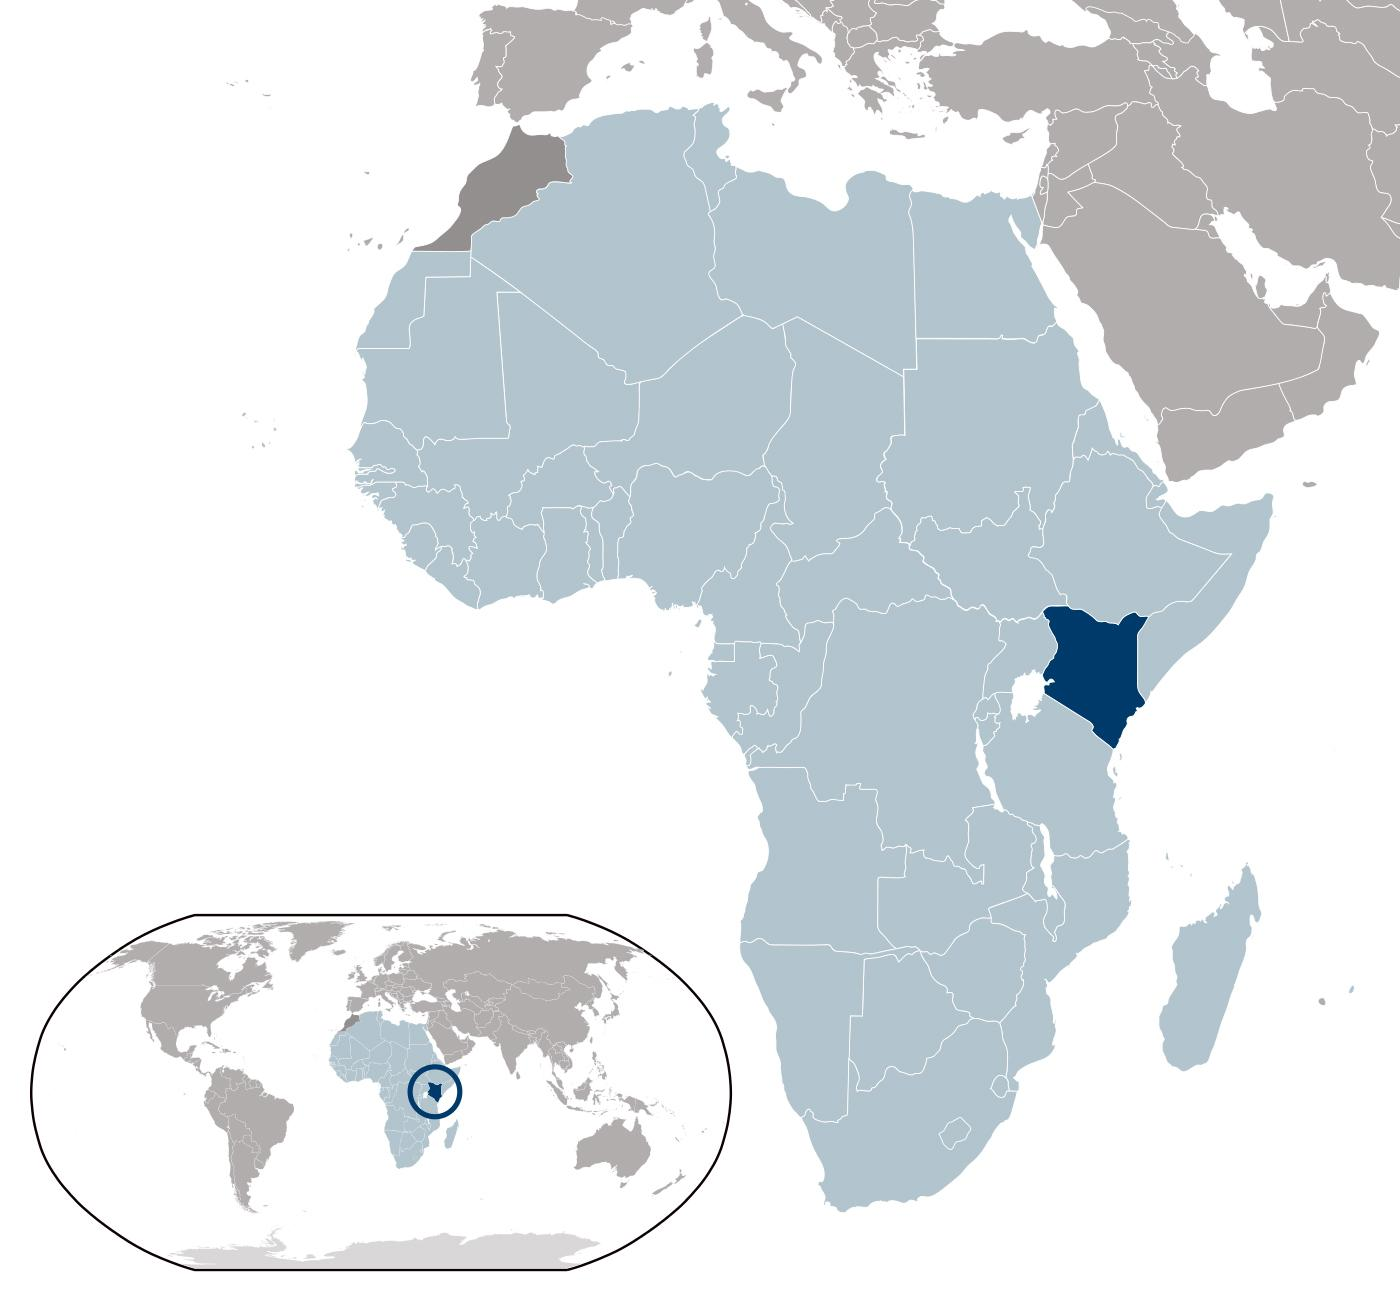 Kenya Location On World Map.Kenya Location On World Map Kenya Map Location Eastern Africa